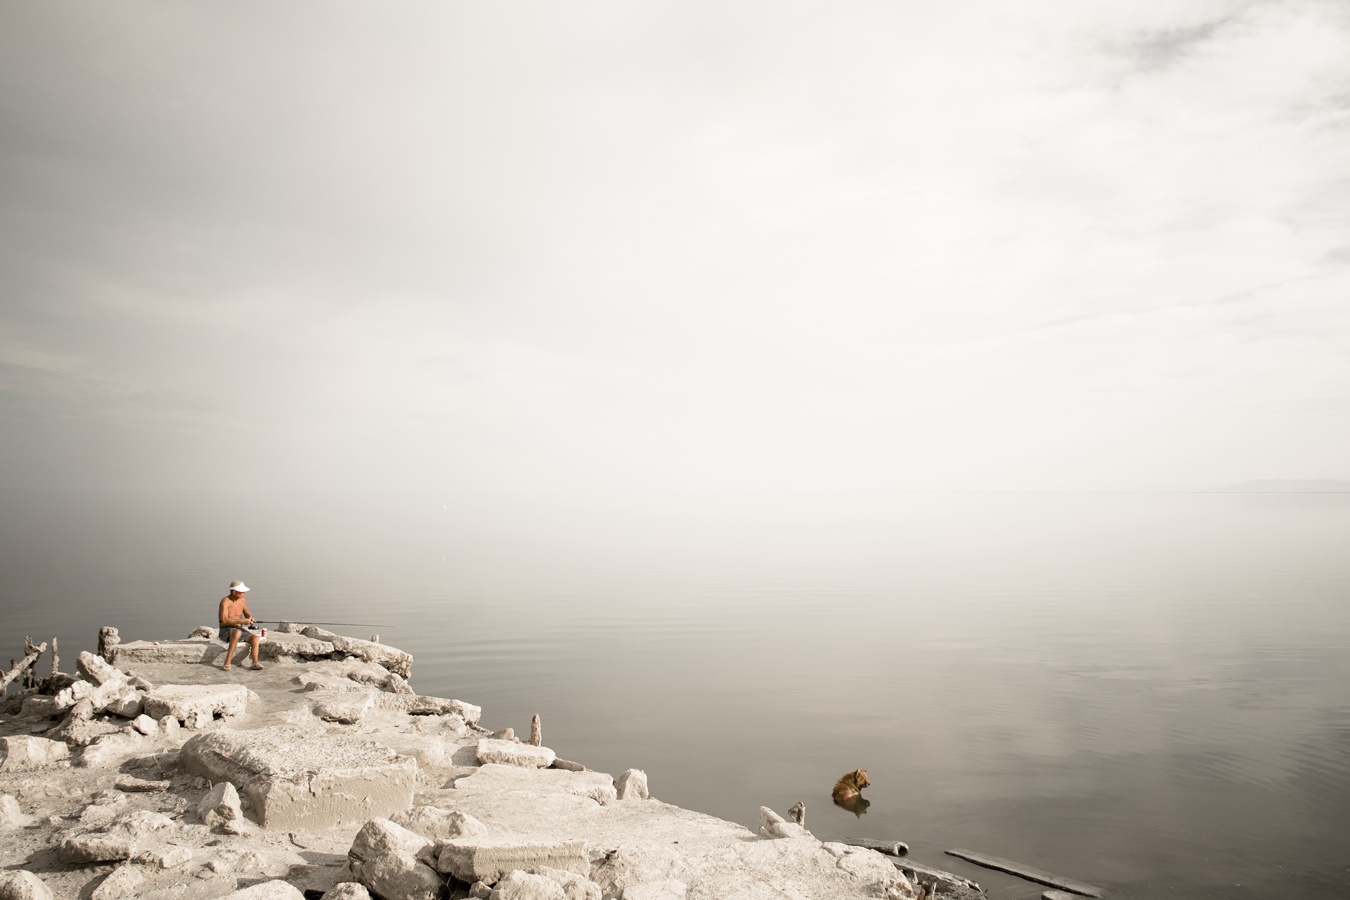 fisherman at the Salton Sea by Jonas Jungblut